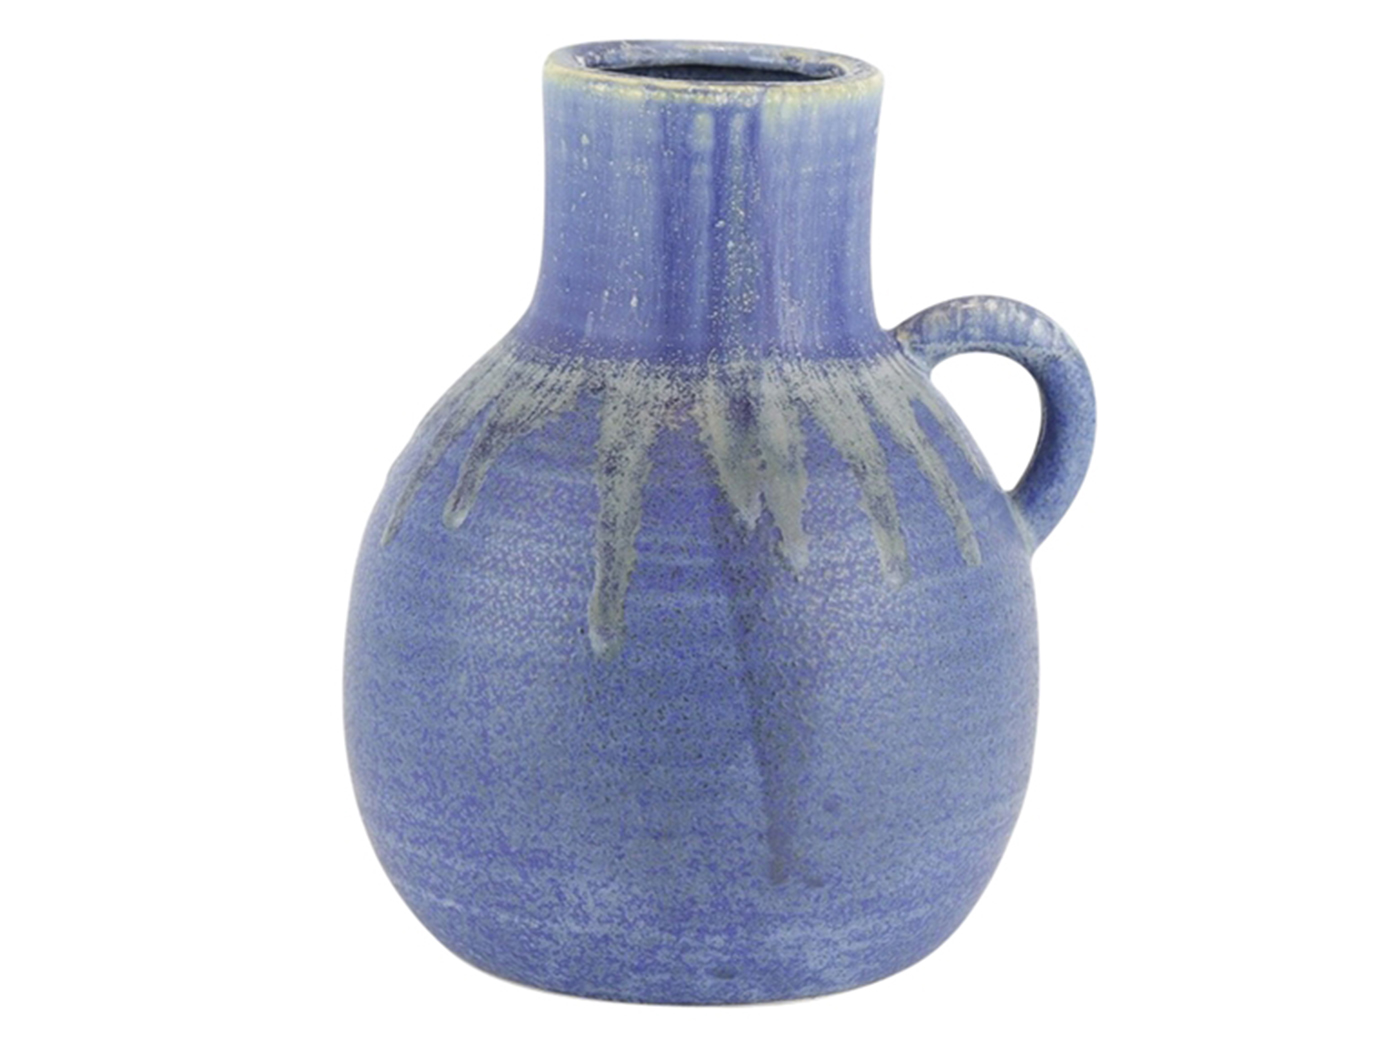 "Small Ceramic Handled Blue Vase 7""W x 9""H"